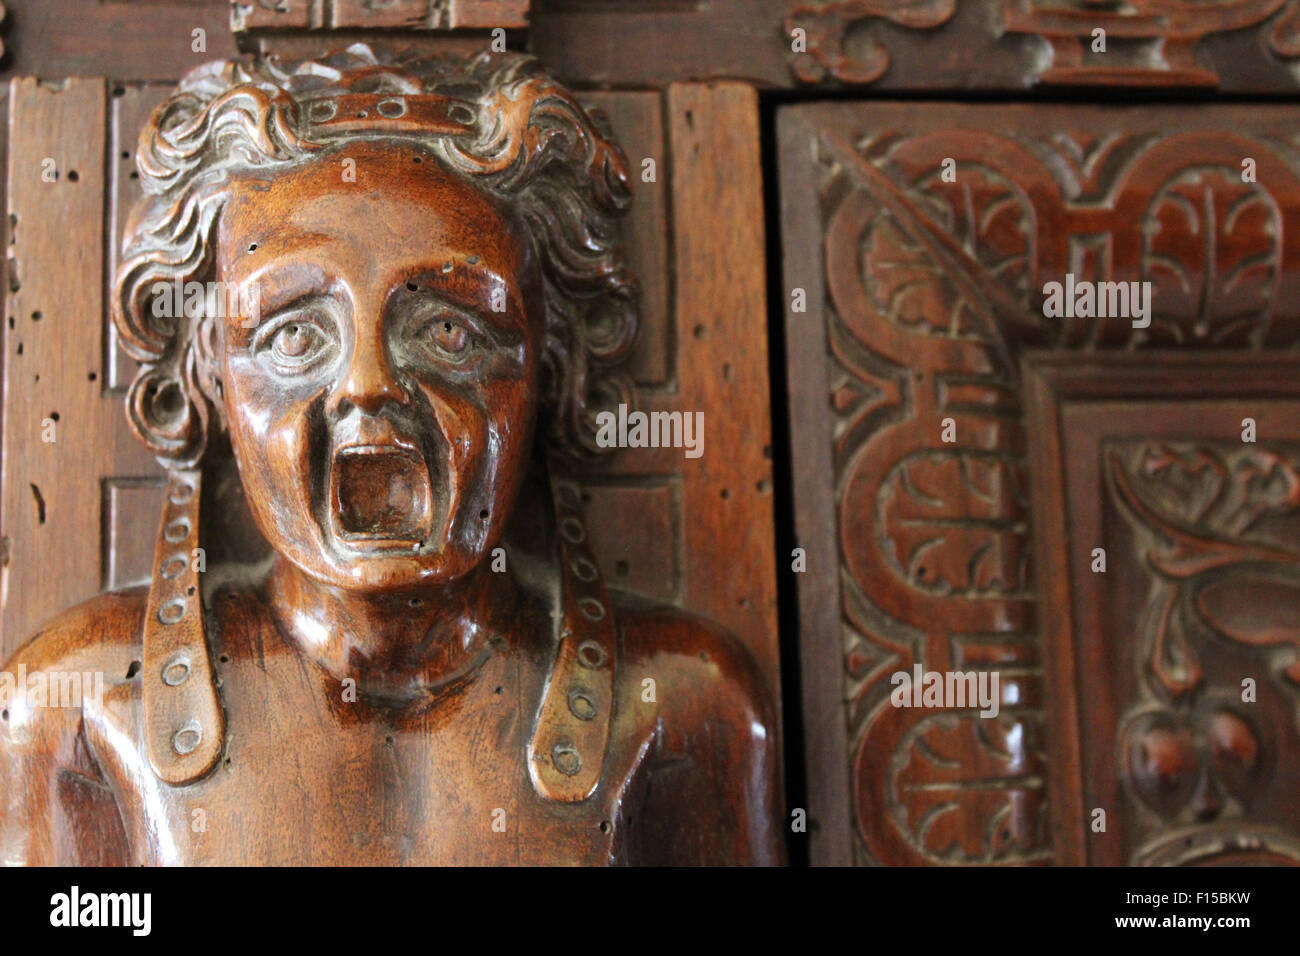 Medieval wood carving on cupboard door, of a man's face shouting, screaming, Renaissance Palace, Bourdeilles, - Stock Image